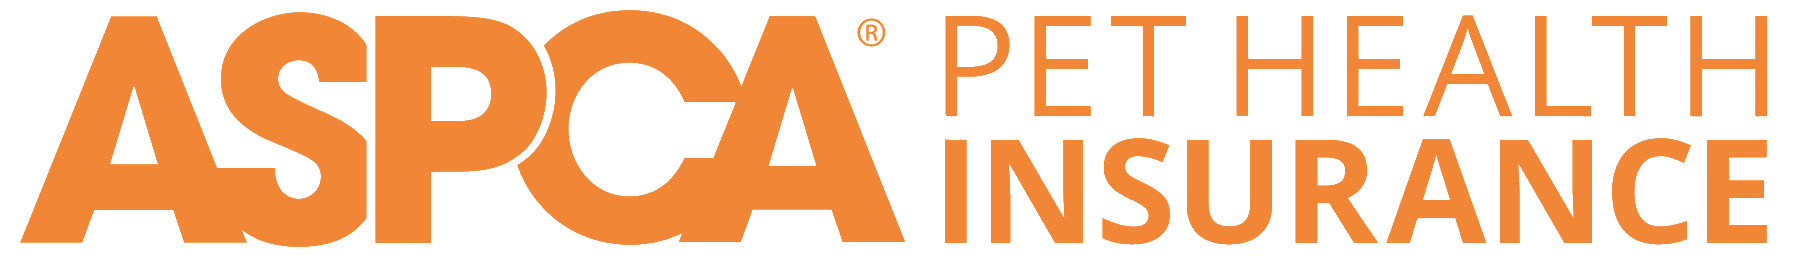 ASPCA pet insurance logo